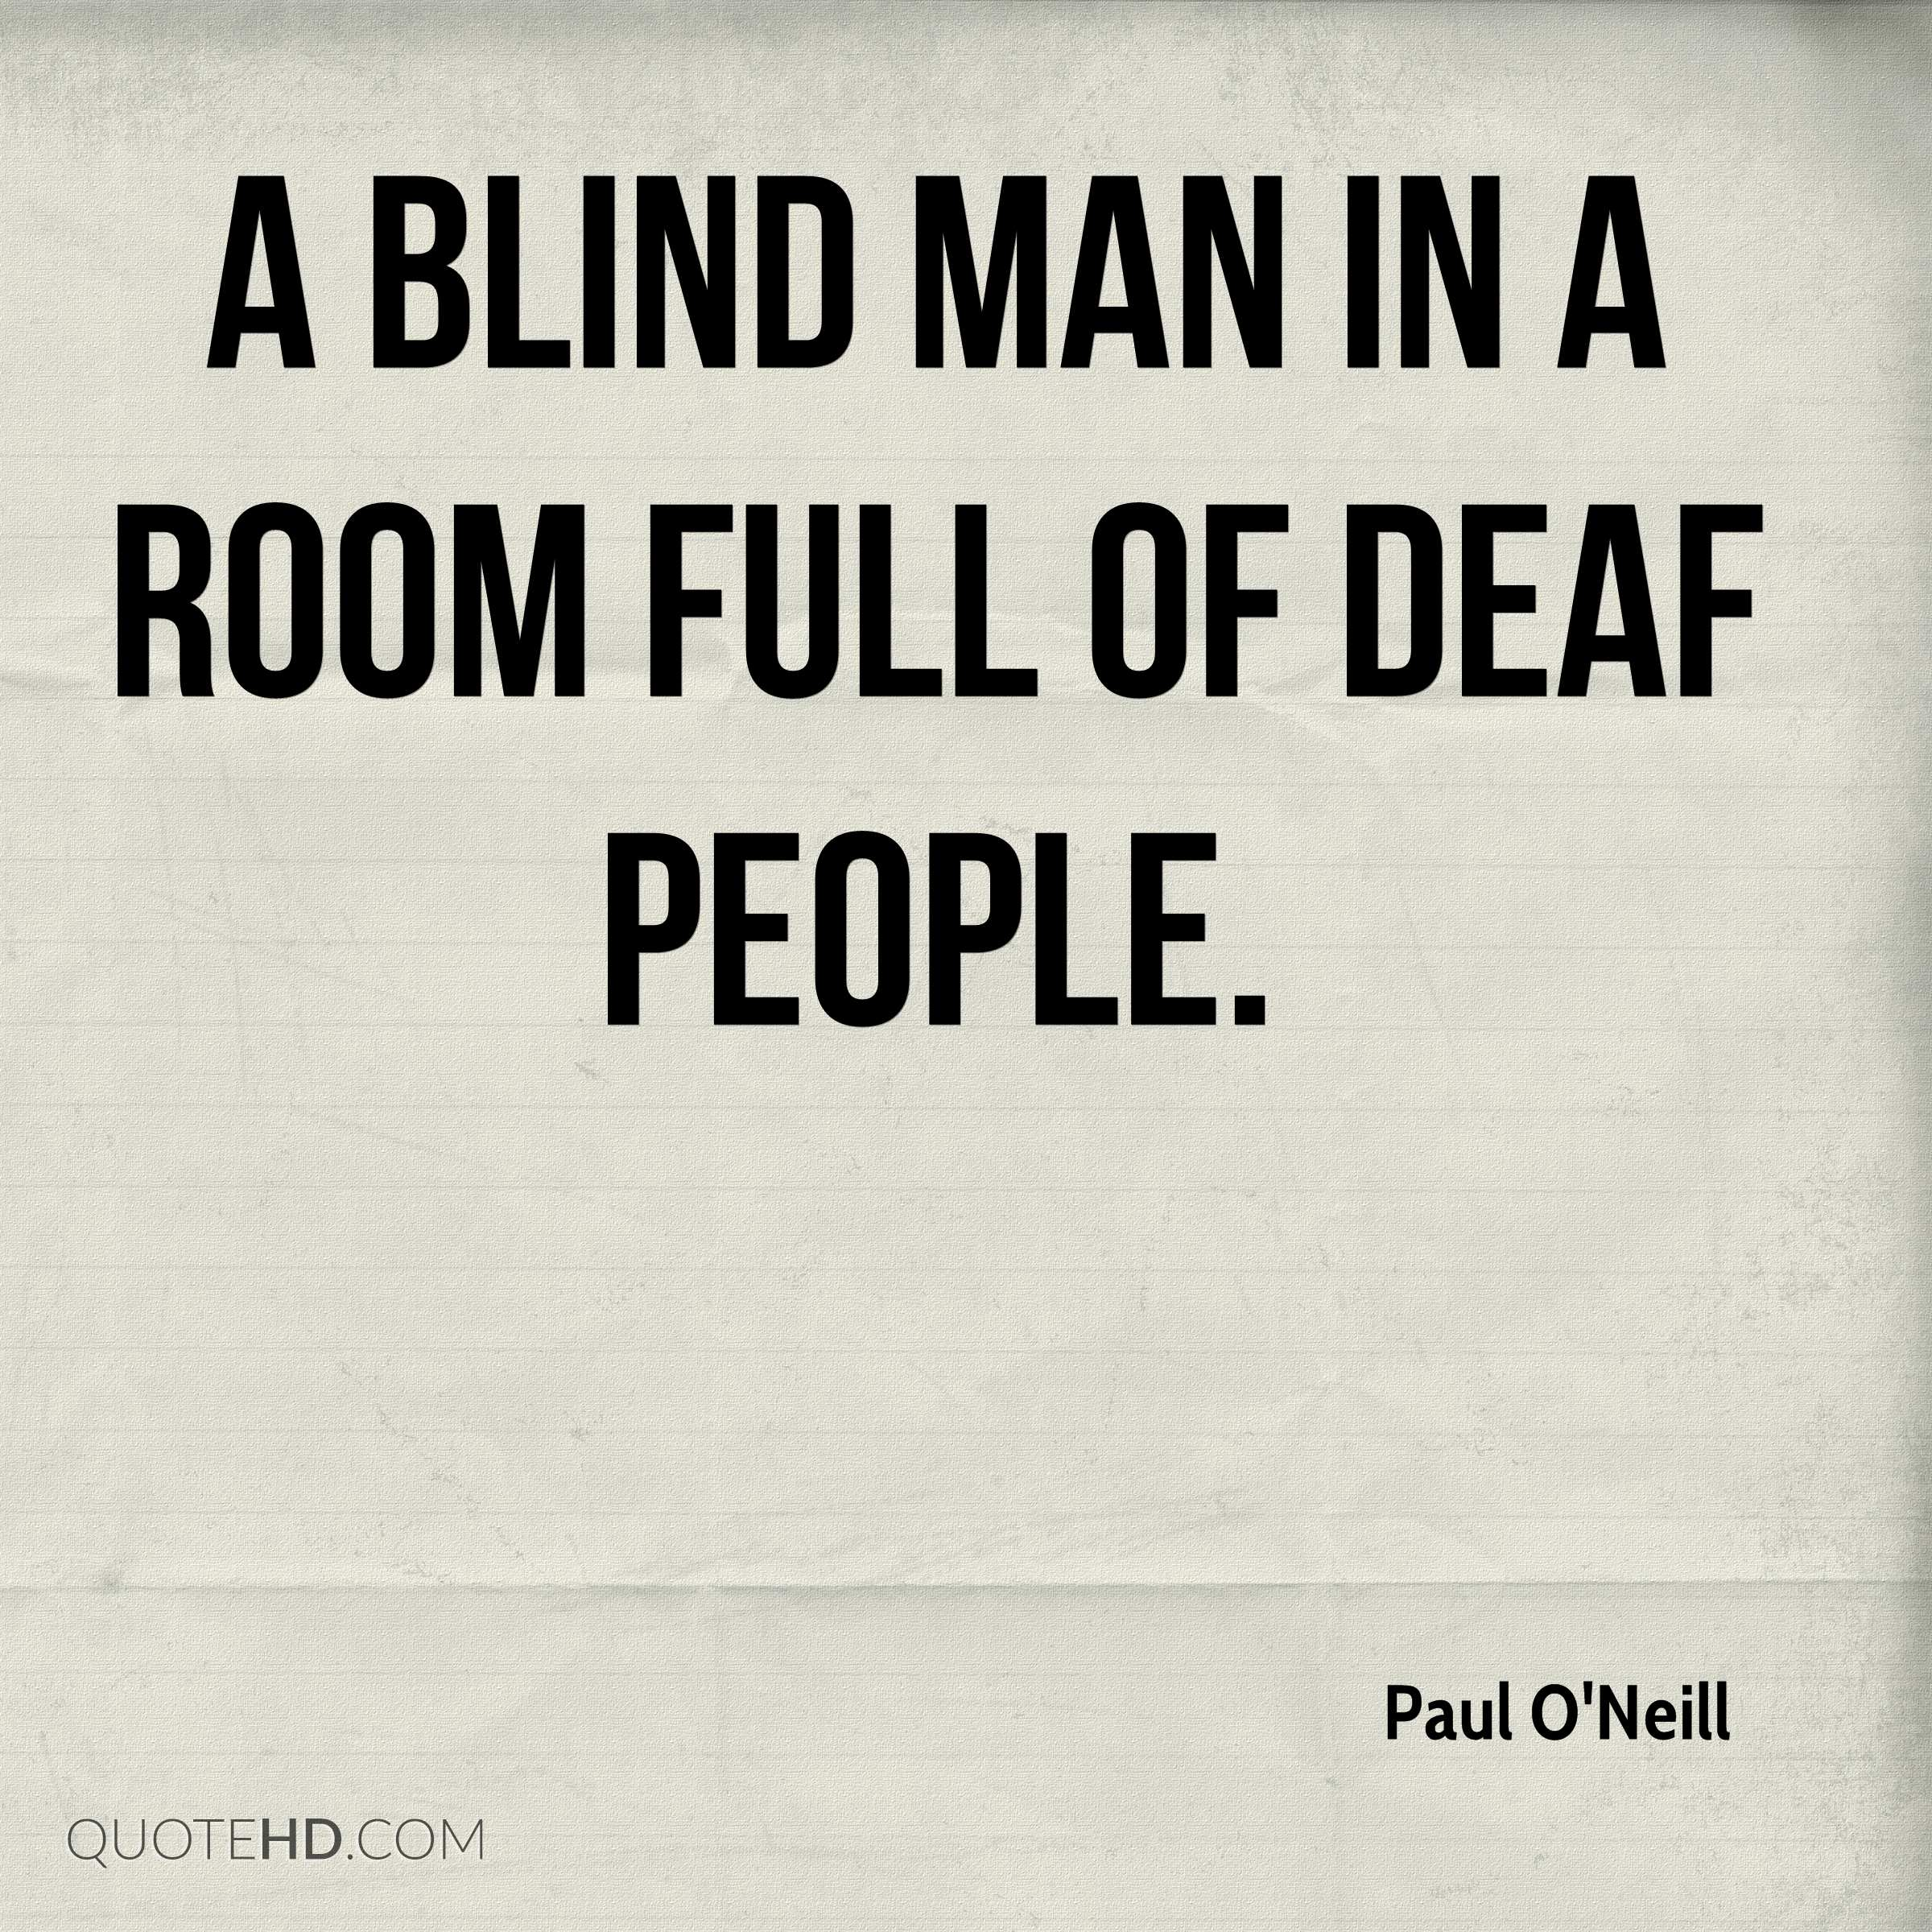 Blind Quotes Stunning Paul O'neill Quotes  Quotehd